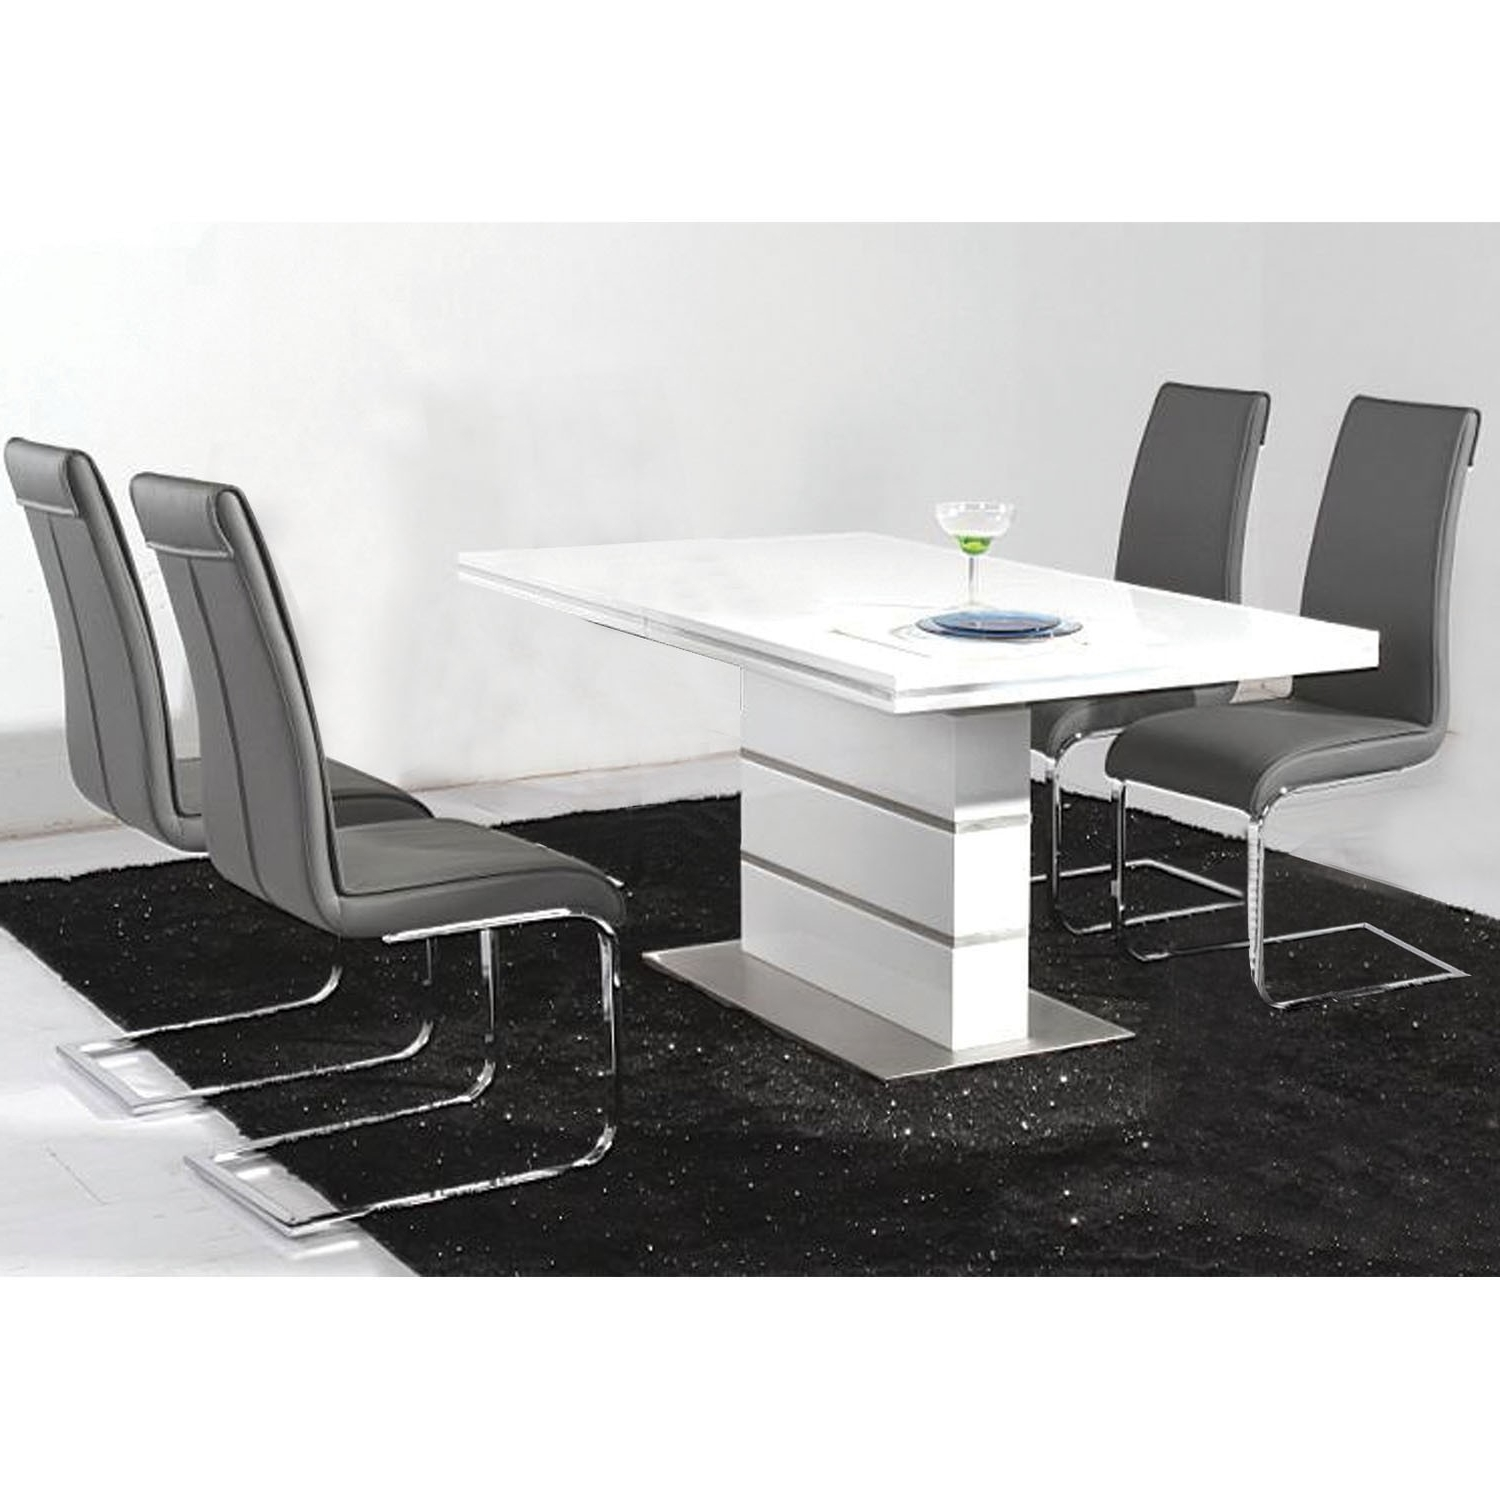 Most Popular White High Gloss Extending Dining Table Unique High Gloss Round For Black Gloss Dining Room Furniture (View 24 of 25)